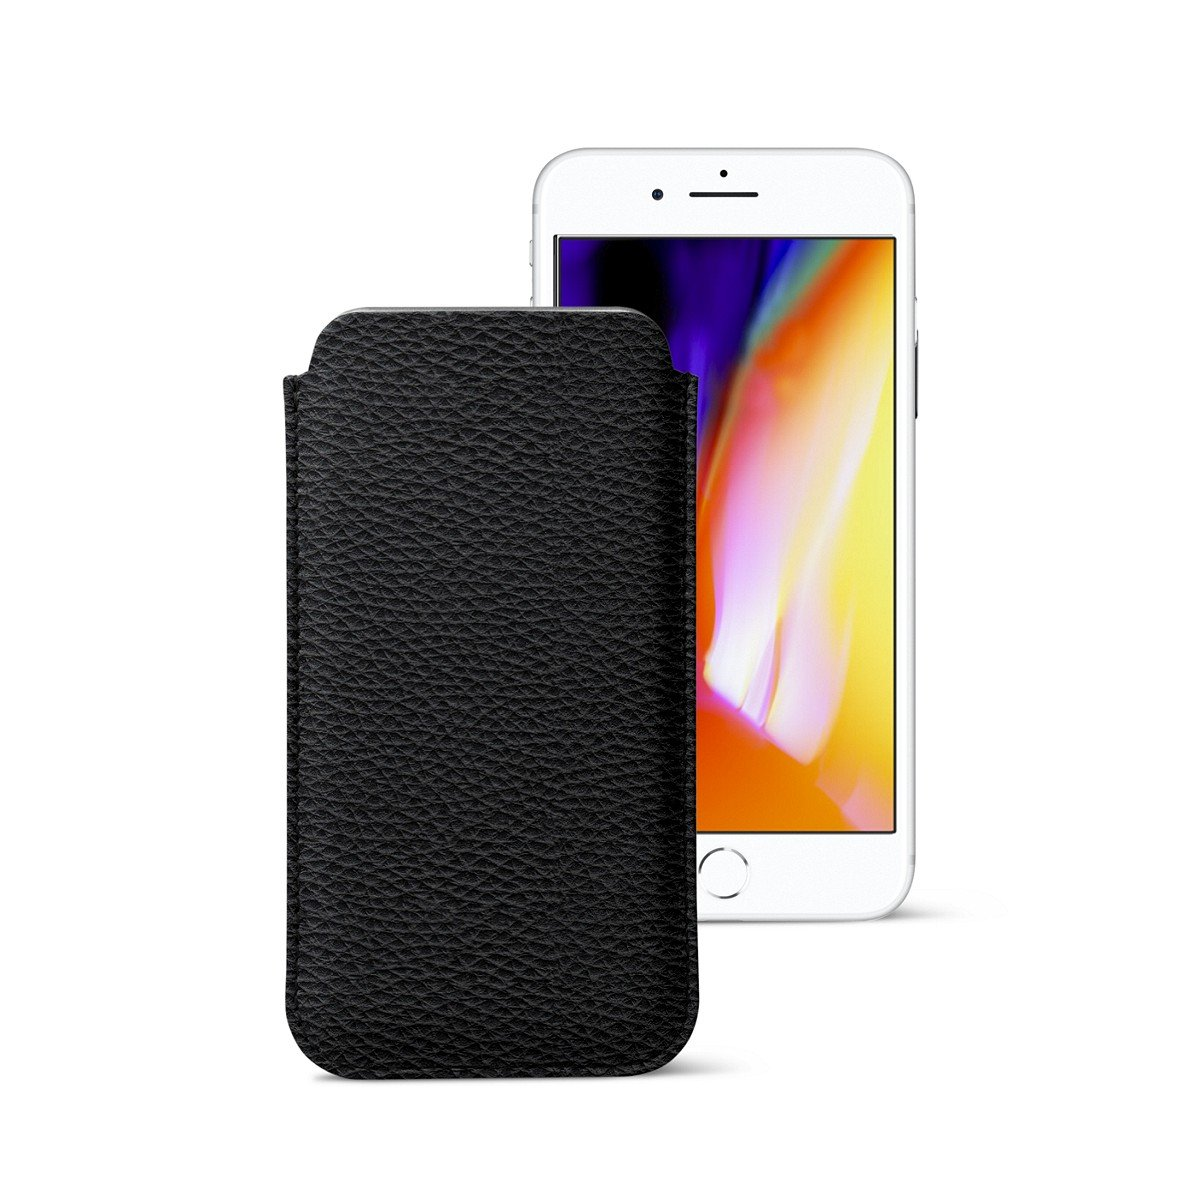 Lucrin - Classic Ultra Thin Sleeve, Protective Soft Case Cover for iPhone 8/7/ 6 - Black - Granulated Leather by Lucrin